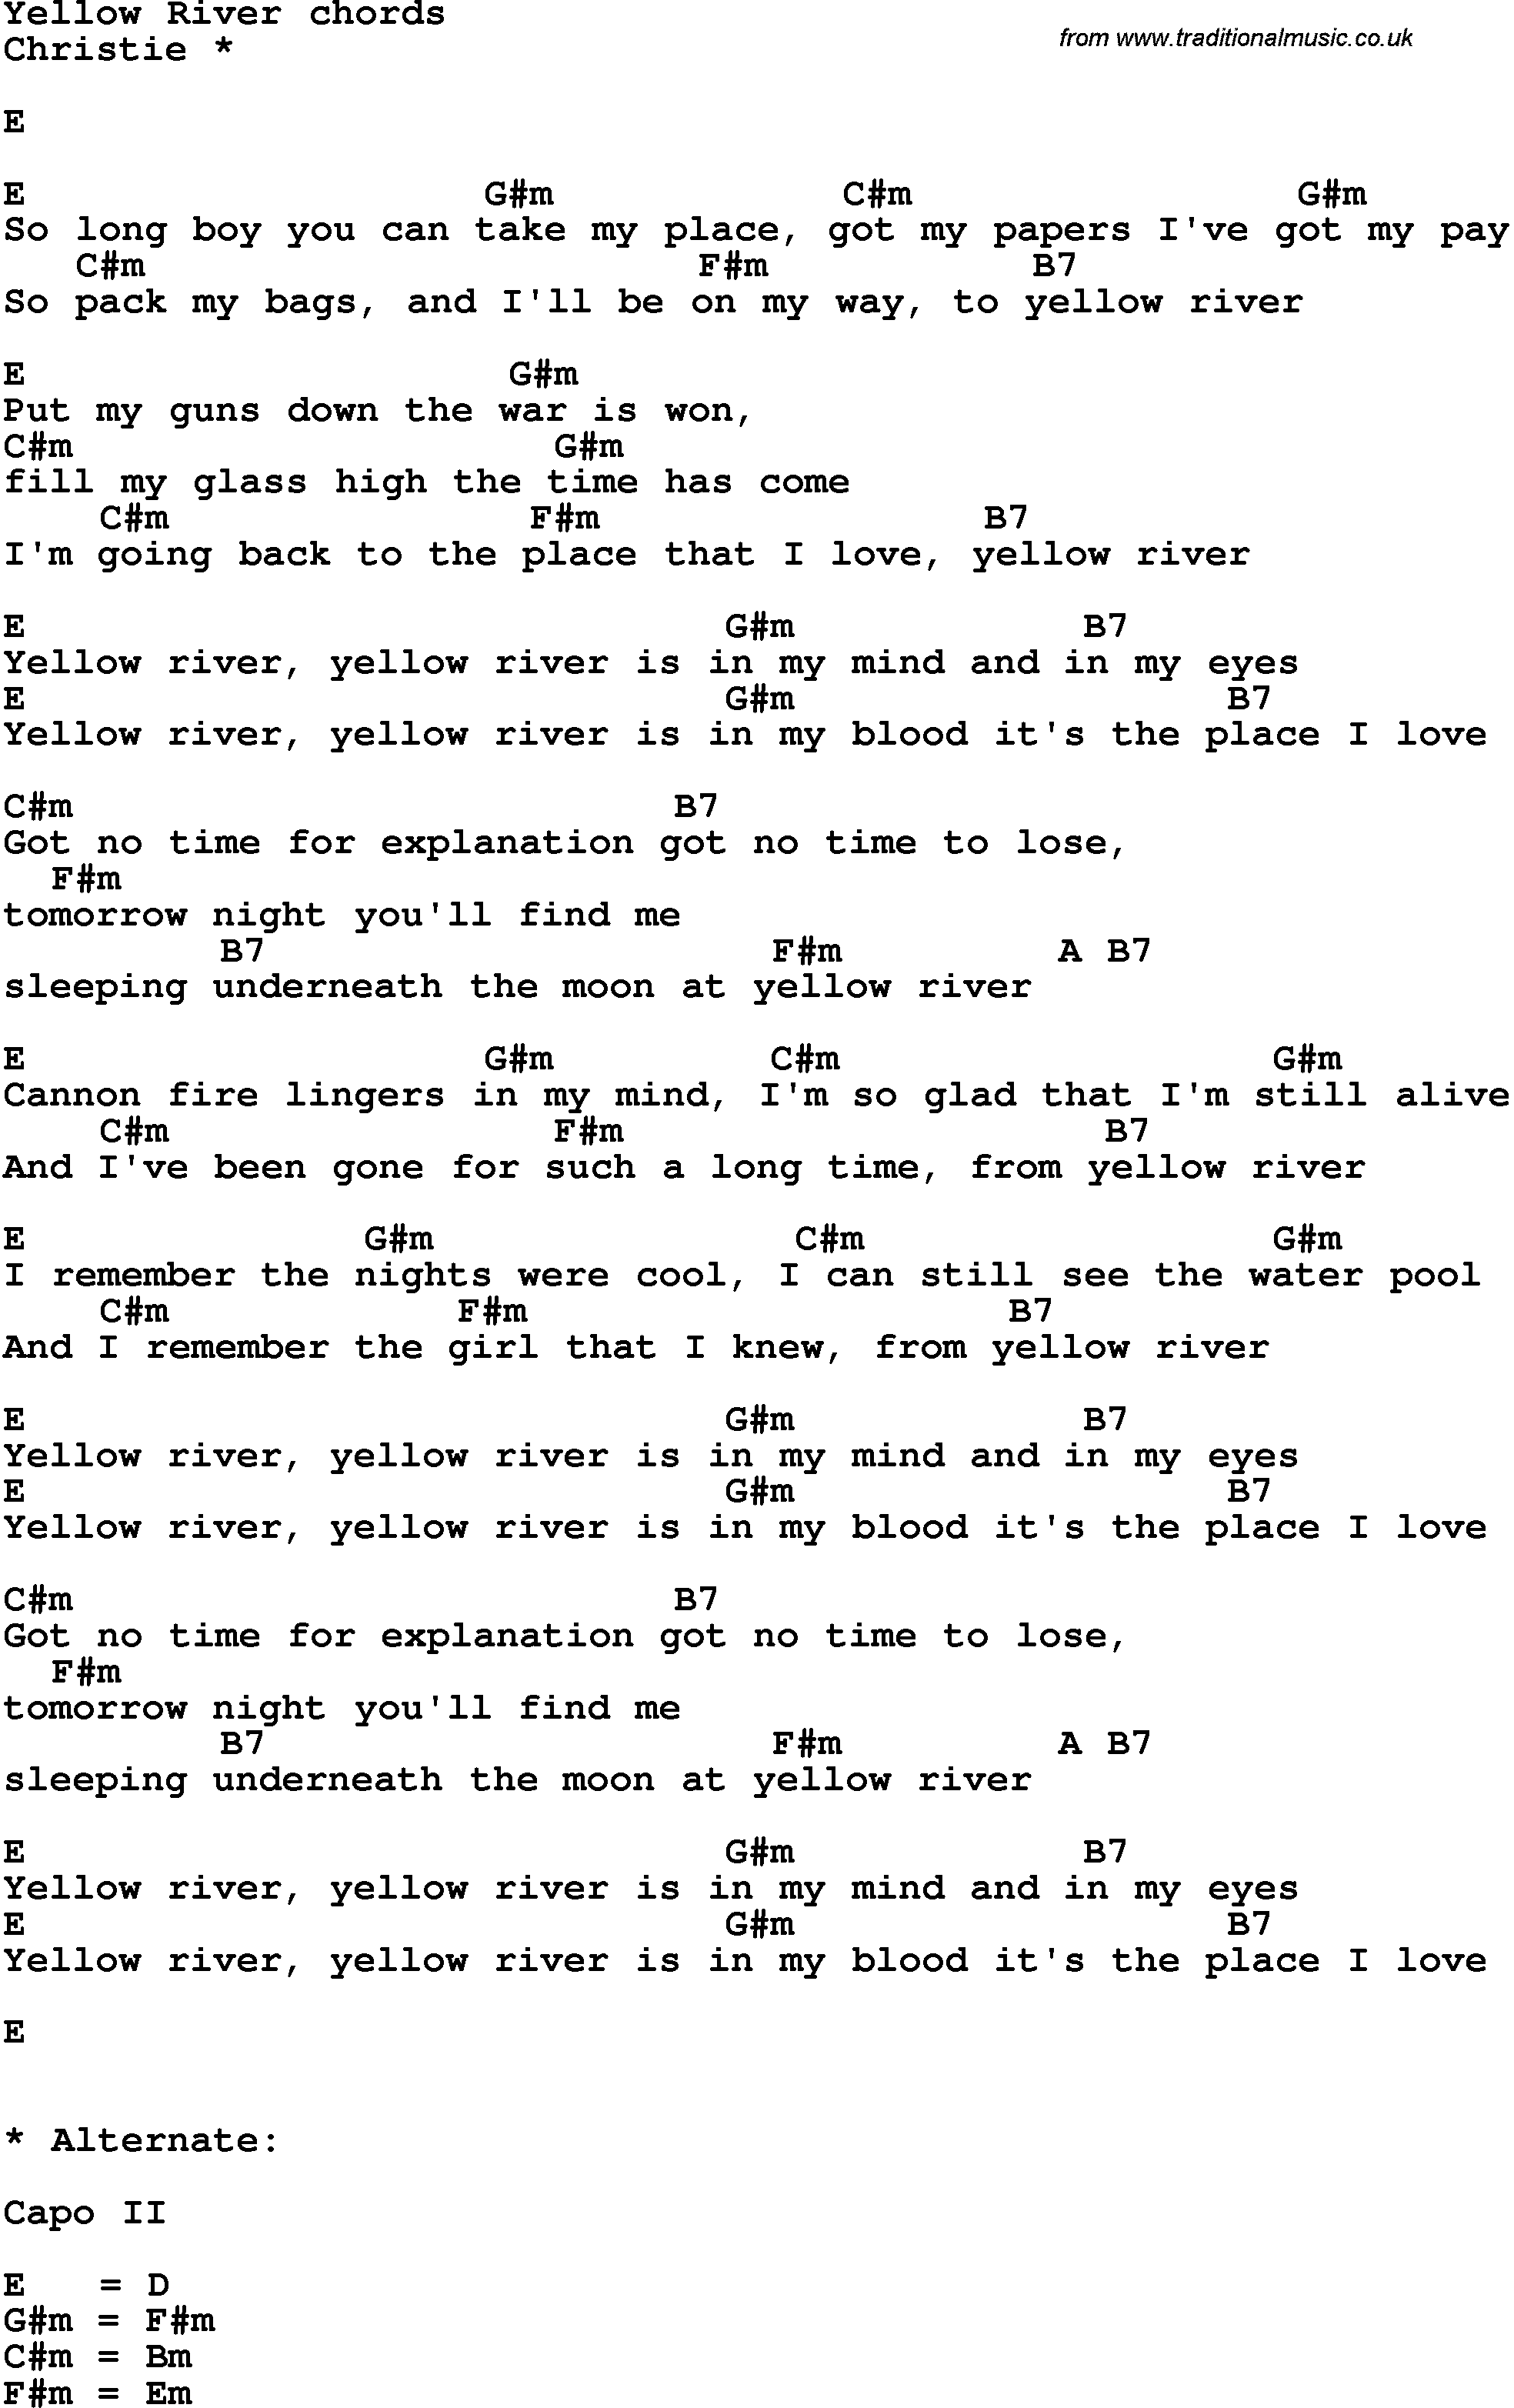 Song lyrics with guitar chords for Yellow River